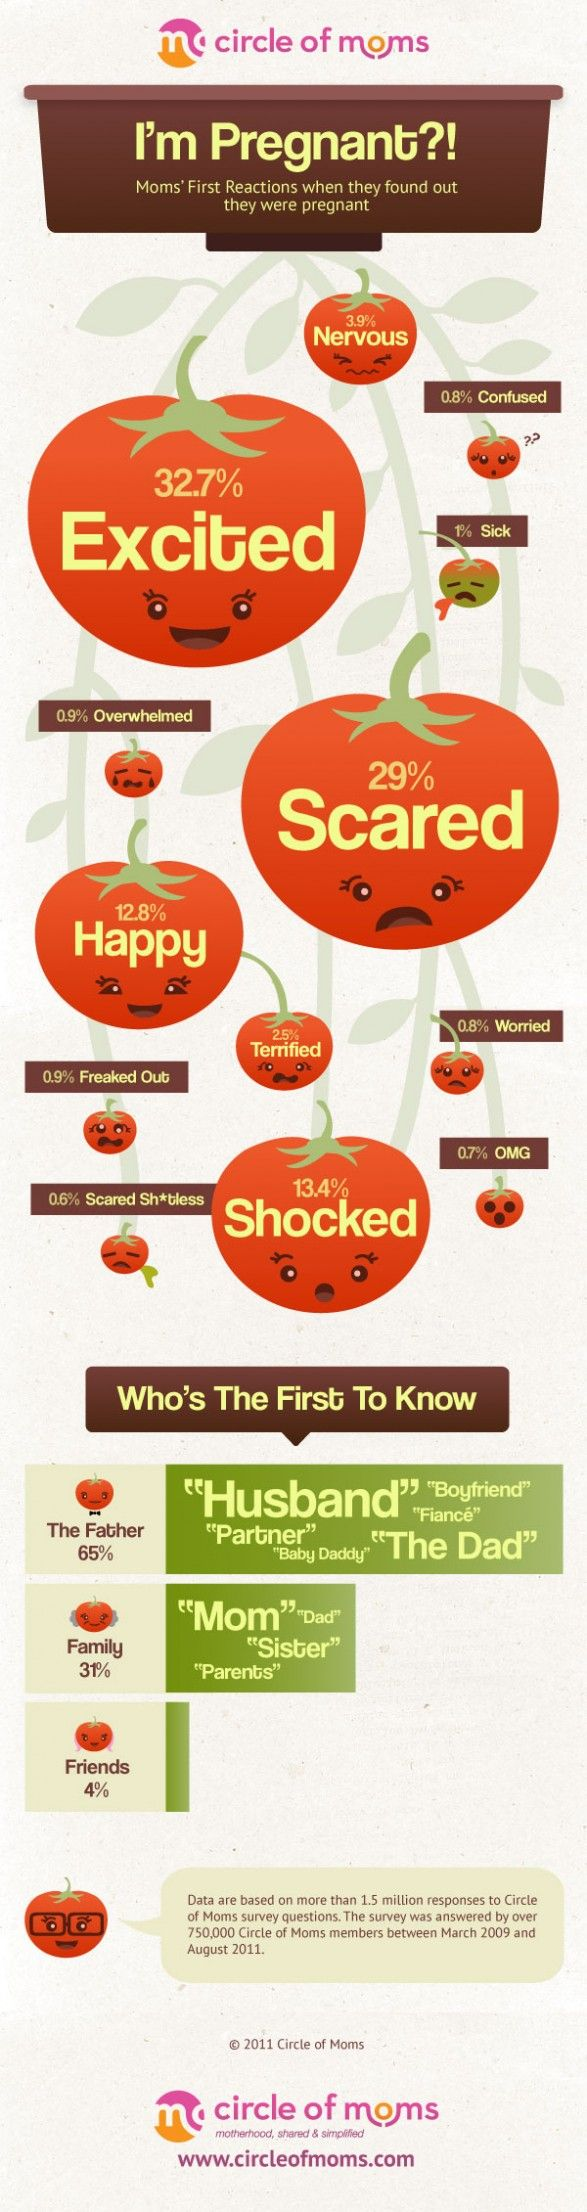 Moms' first reactions when they found out they were pregnant.